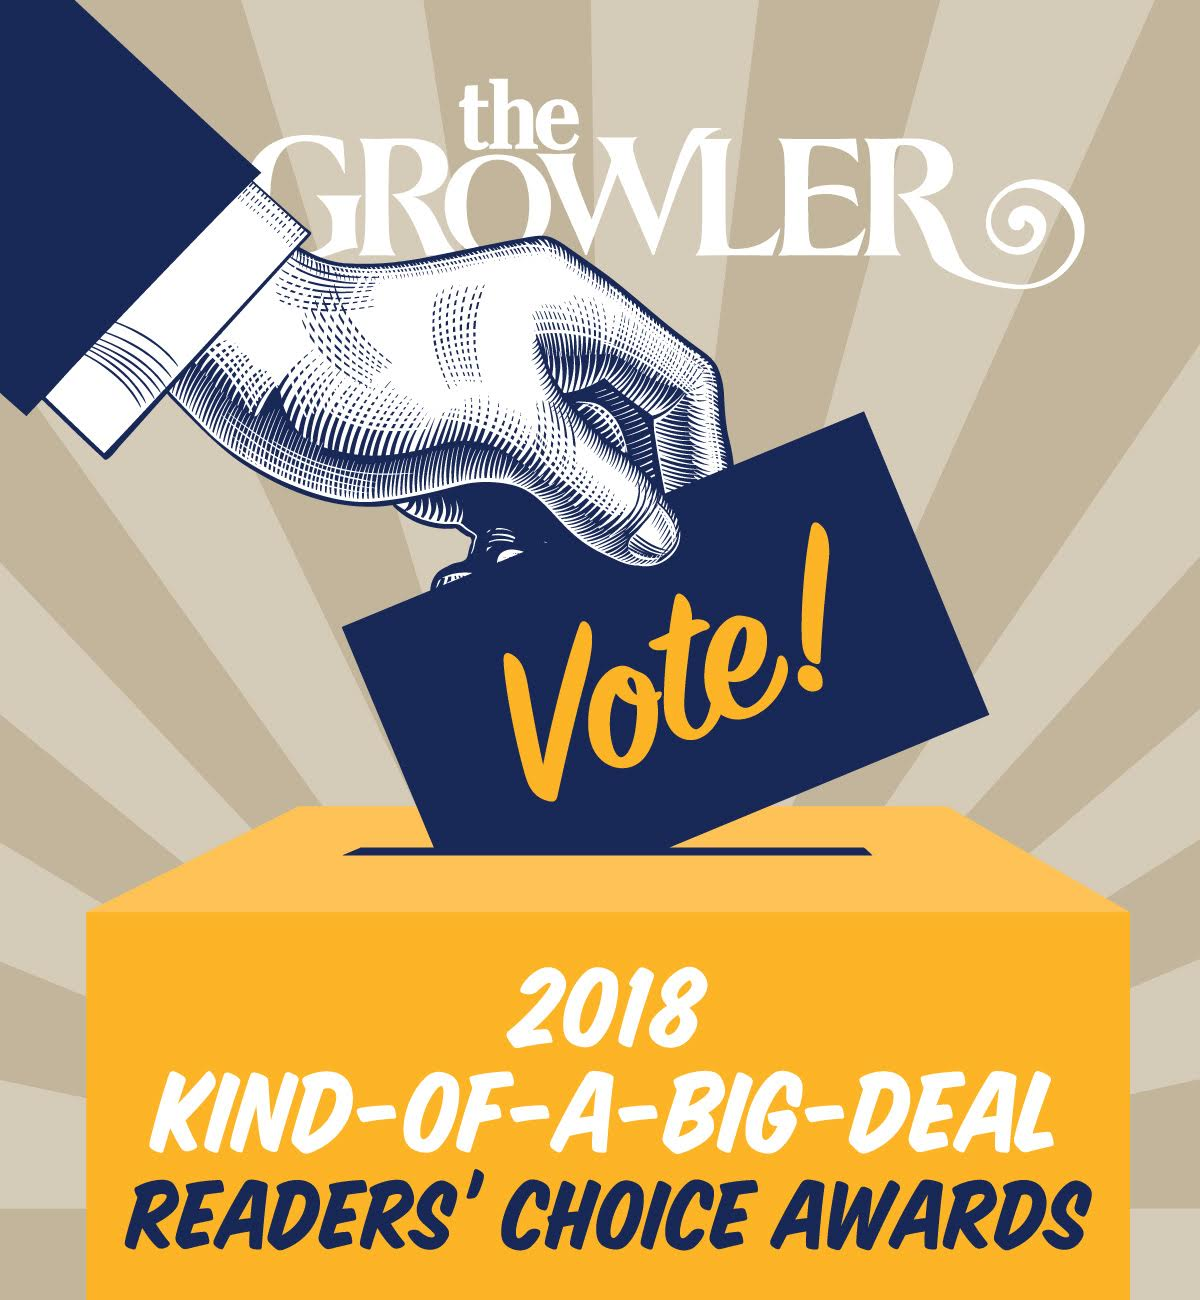 "Kind-Of-A-Big-Deal-Awards Nominee 2018 - Smokey's was nominated for a 2018 ""Kind-Of-A-Big-Deal-Award"" for ""Best Craft Beer Restaurant"" (Metro Area) by the readers of ""The Growler Magazine""! We are deeply honored by this prestigious nomination. We are so fortunate to have such an amazing craft beer culture in Minnesota. - Cheers!"